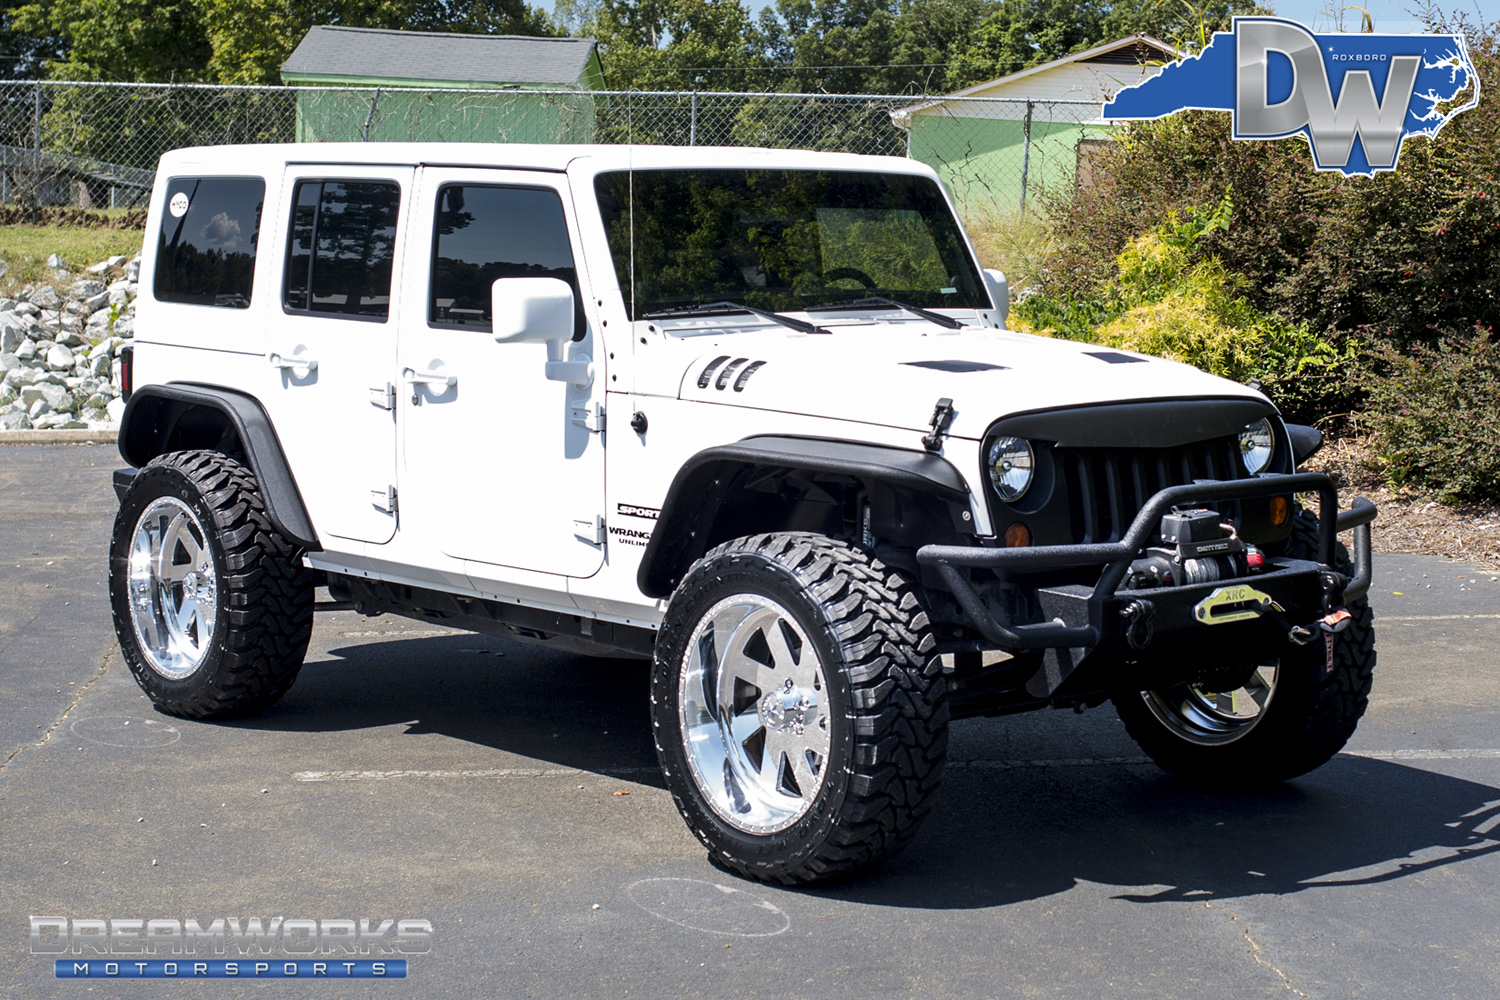 small resolution of jeep wrangler american force wheels dreamworks motorsports 1